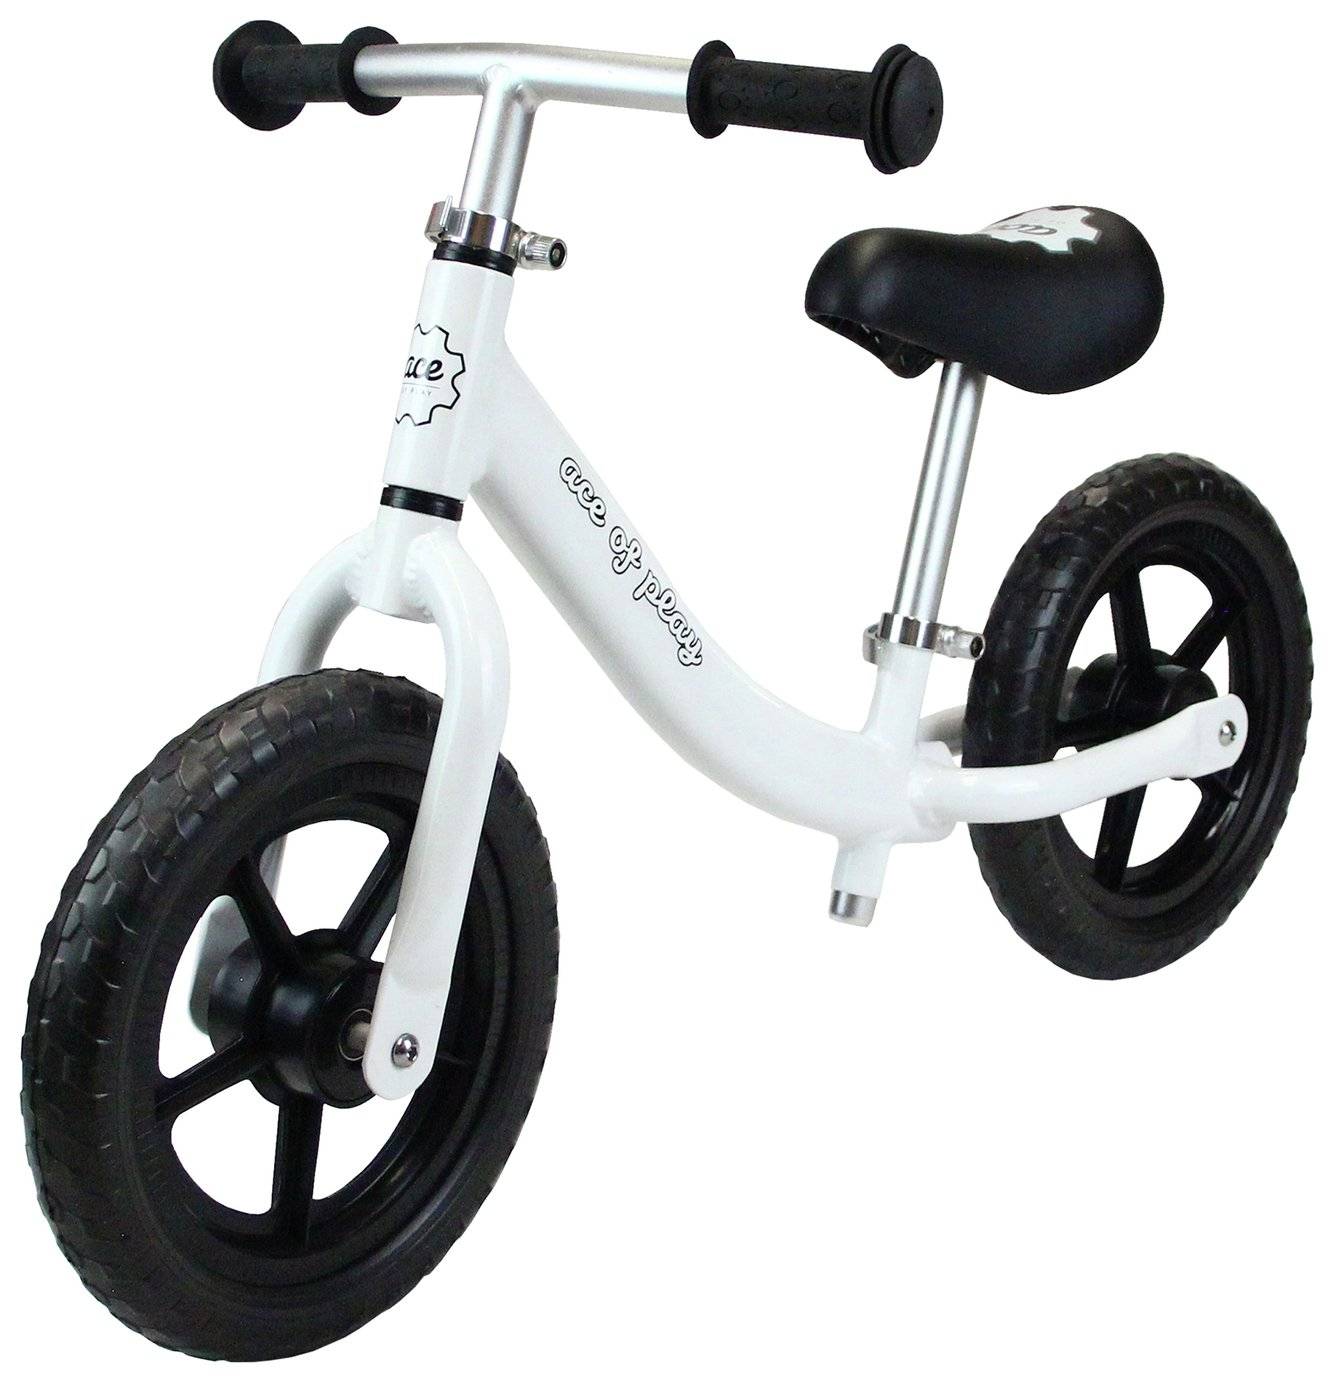 Image of Ace of Play Balance Bike - White.